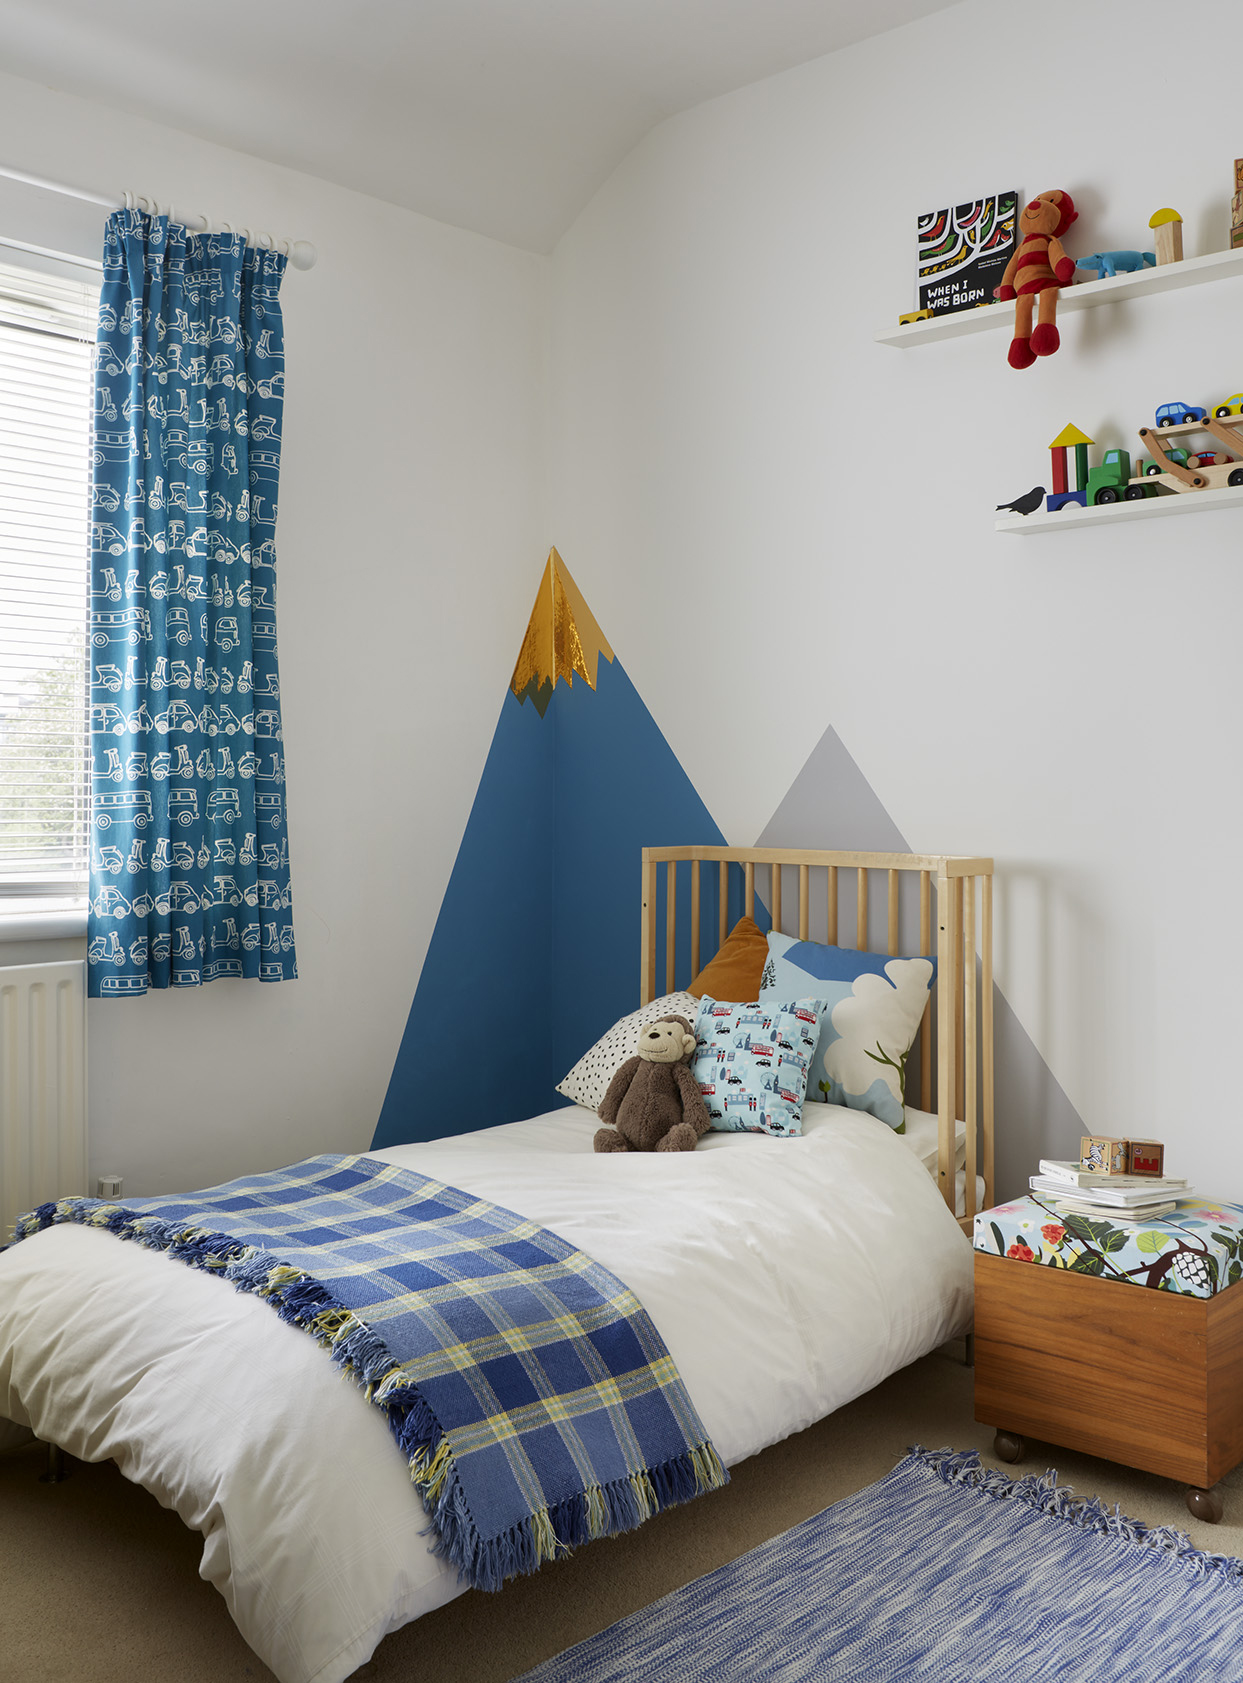 Toddler boys bedroom and mountainscape wall decor.jpg